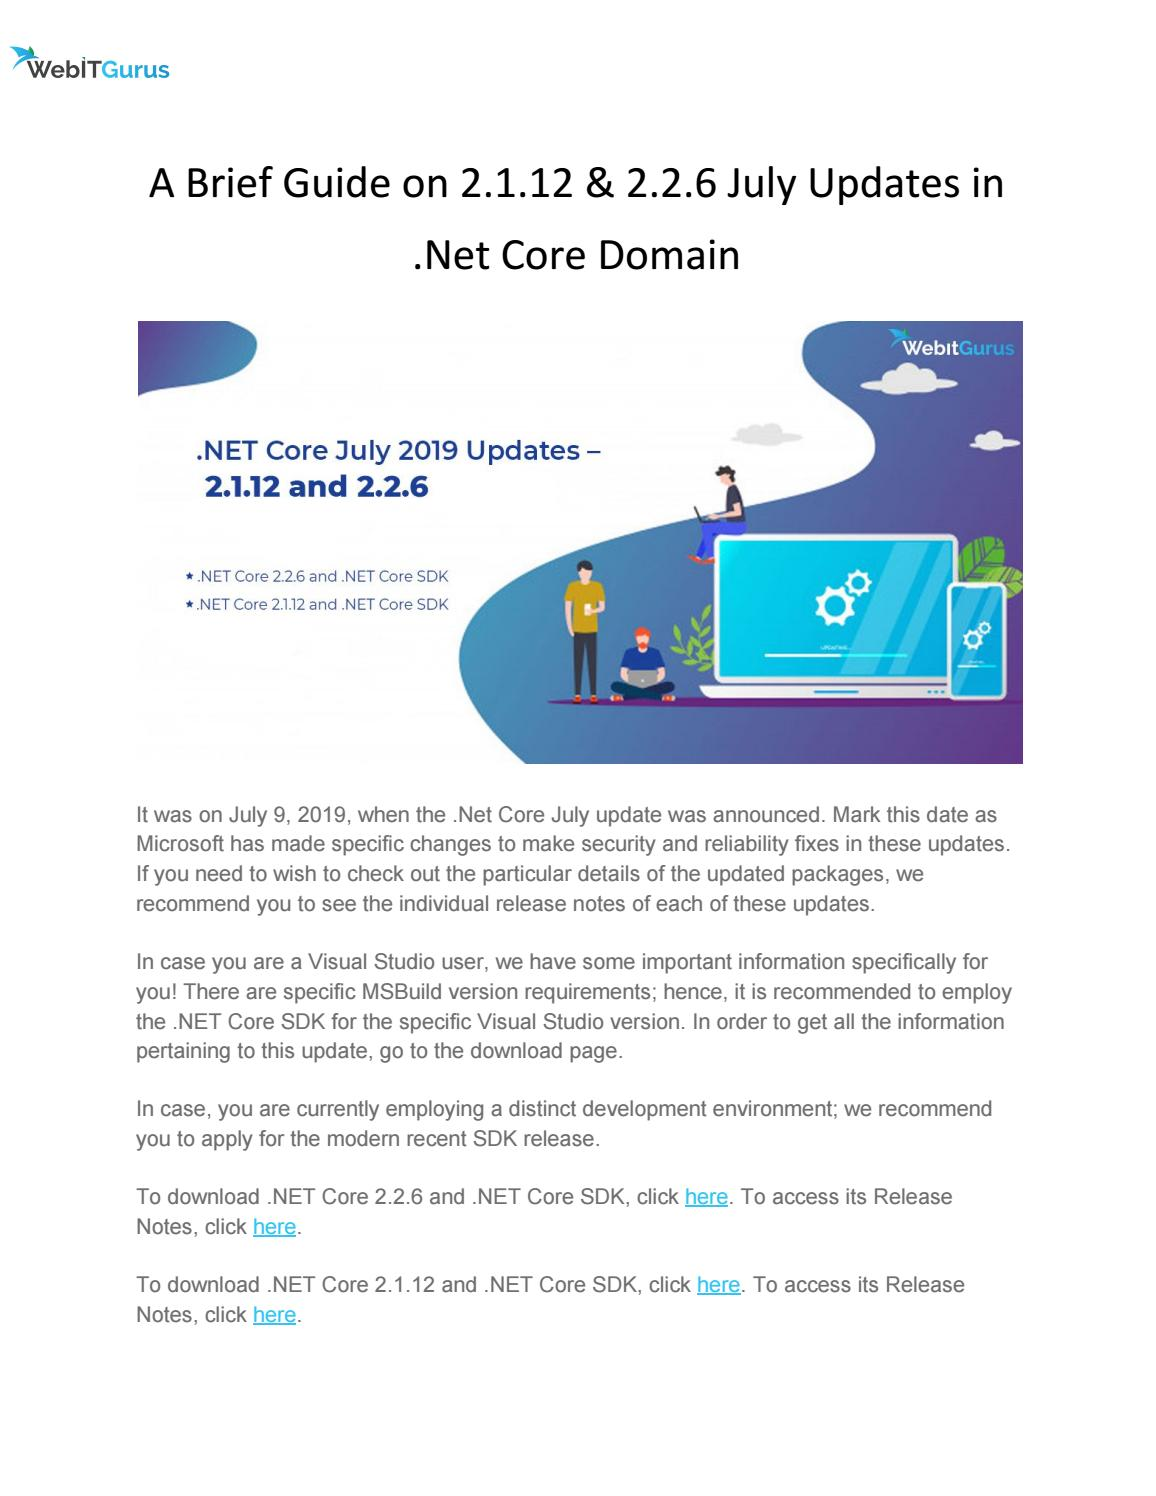 A Brief Guide on 2 1 12 & 2 2 6 July Updates in  Net Core